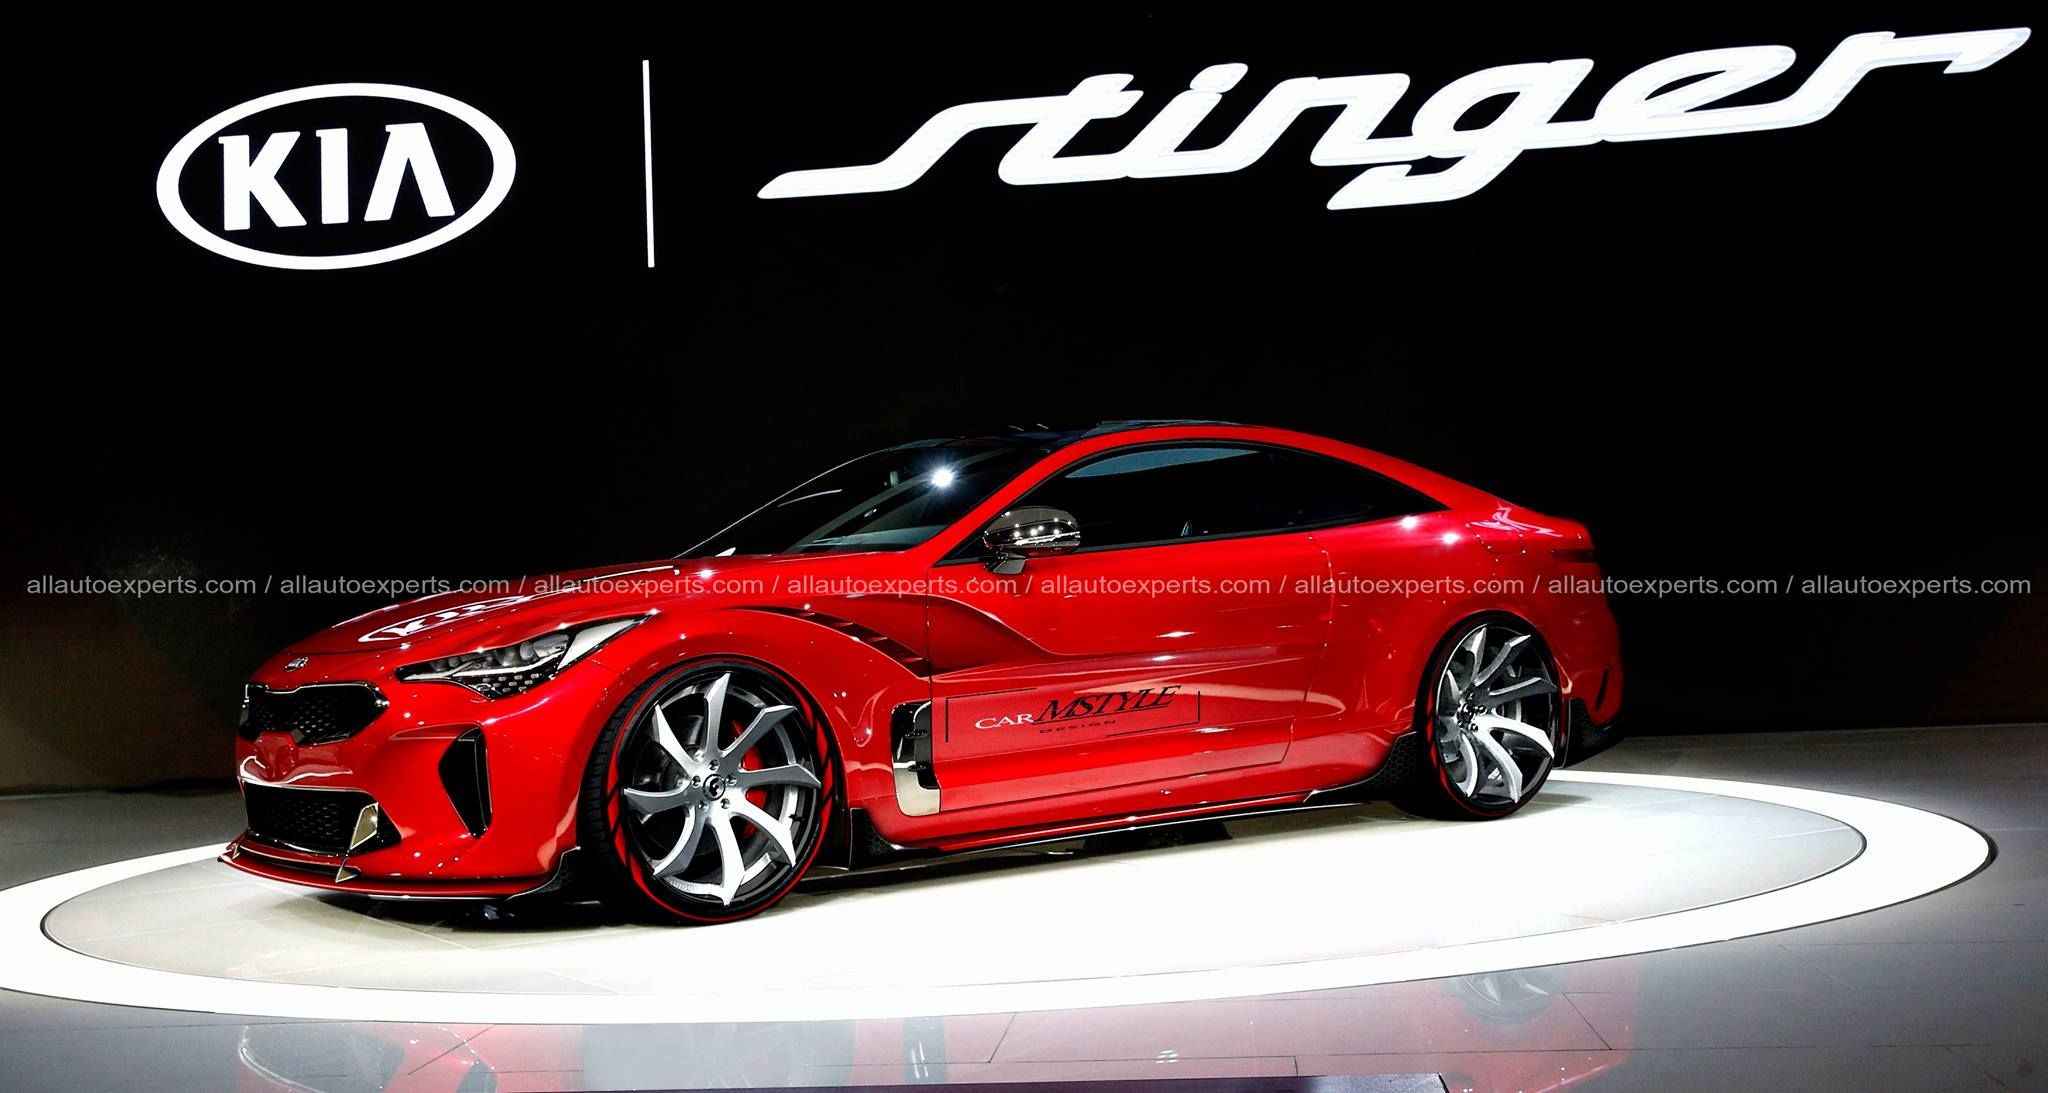 Kia Stinger Gt Coupe All Wheel Drive And Turbo Aspirated What Cars Have - Medium